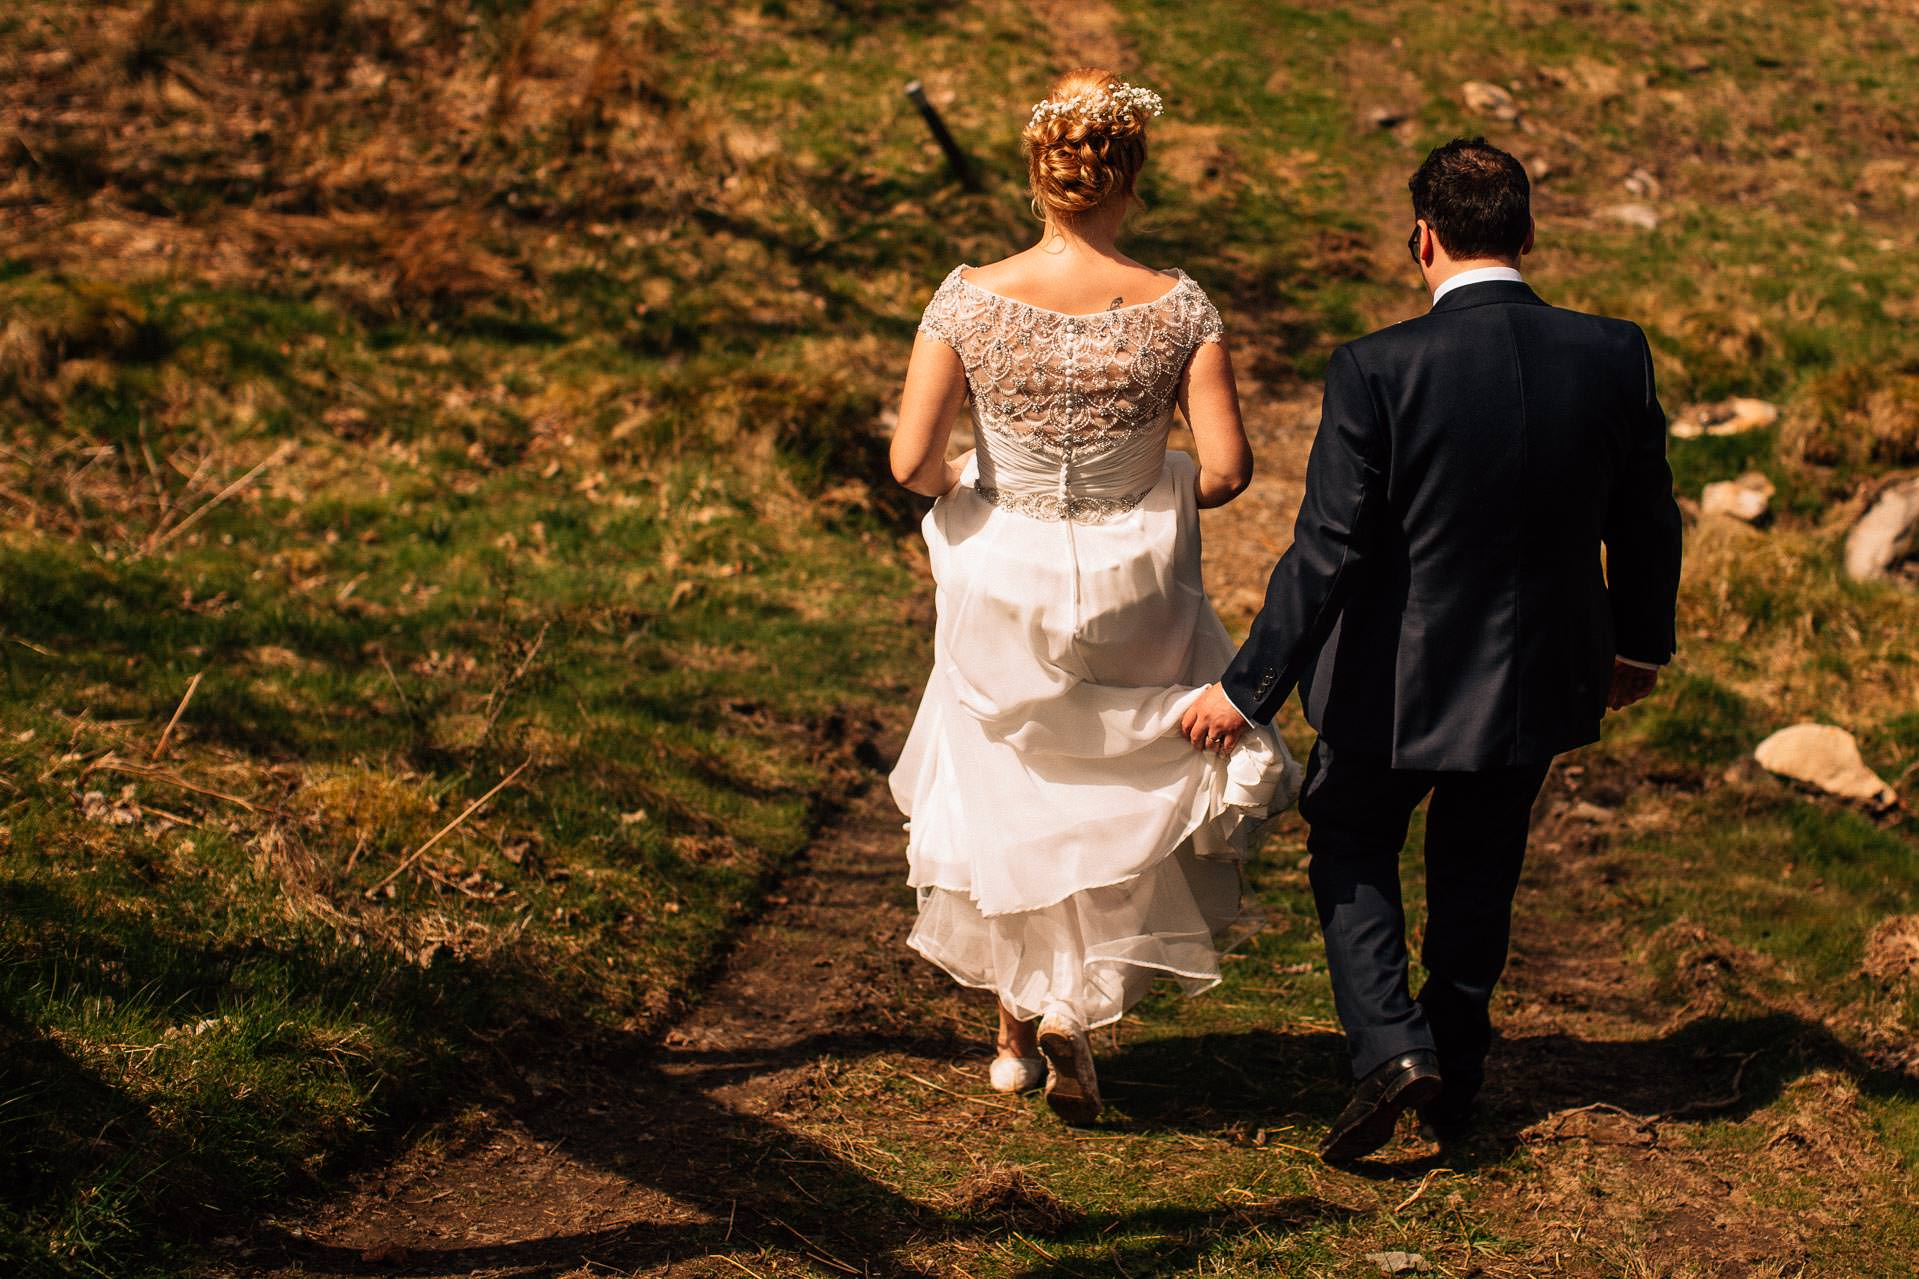 The Wild Boar Wedding Photography - EM - bride and groom walking together